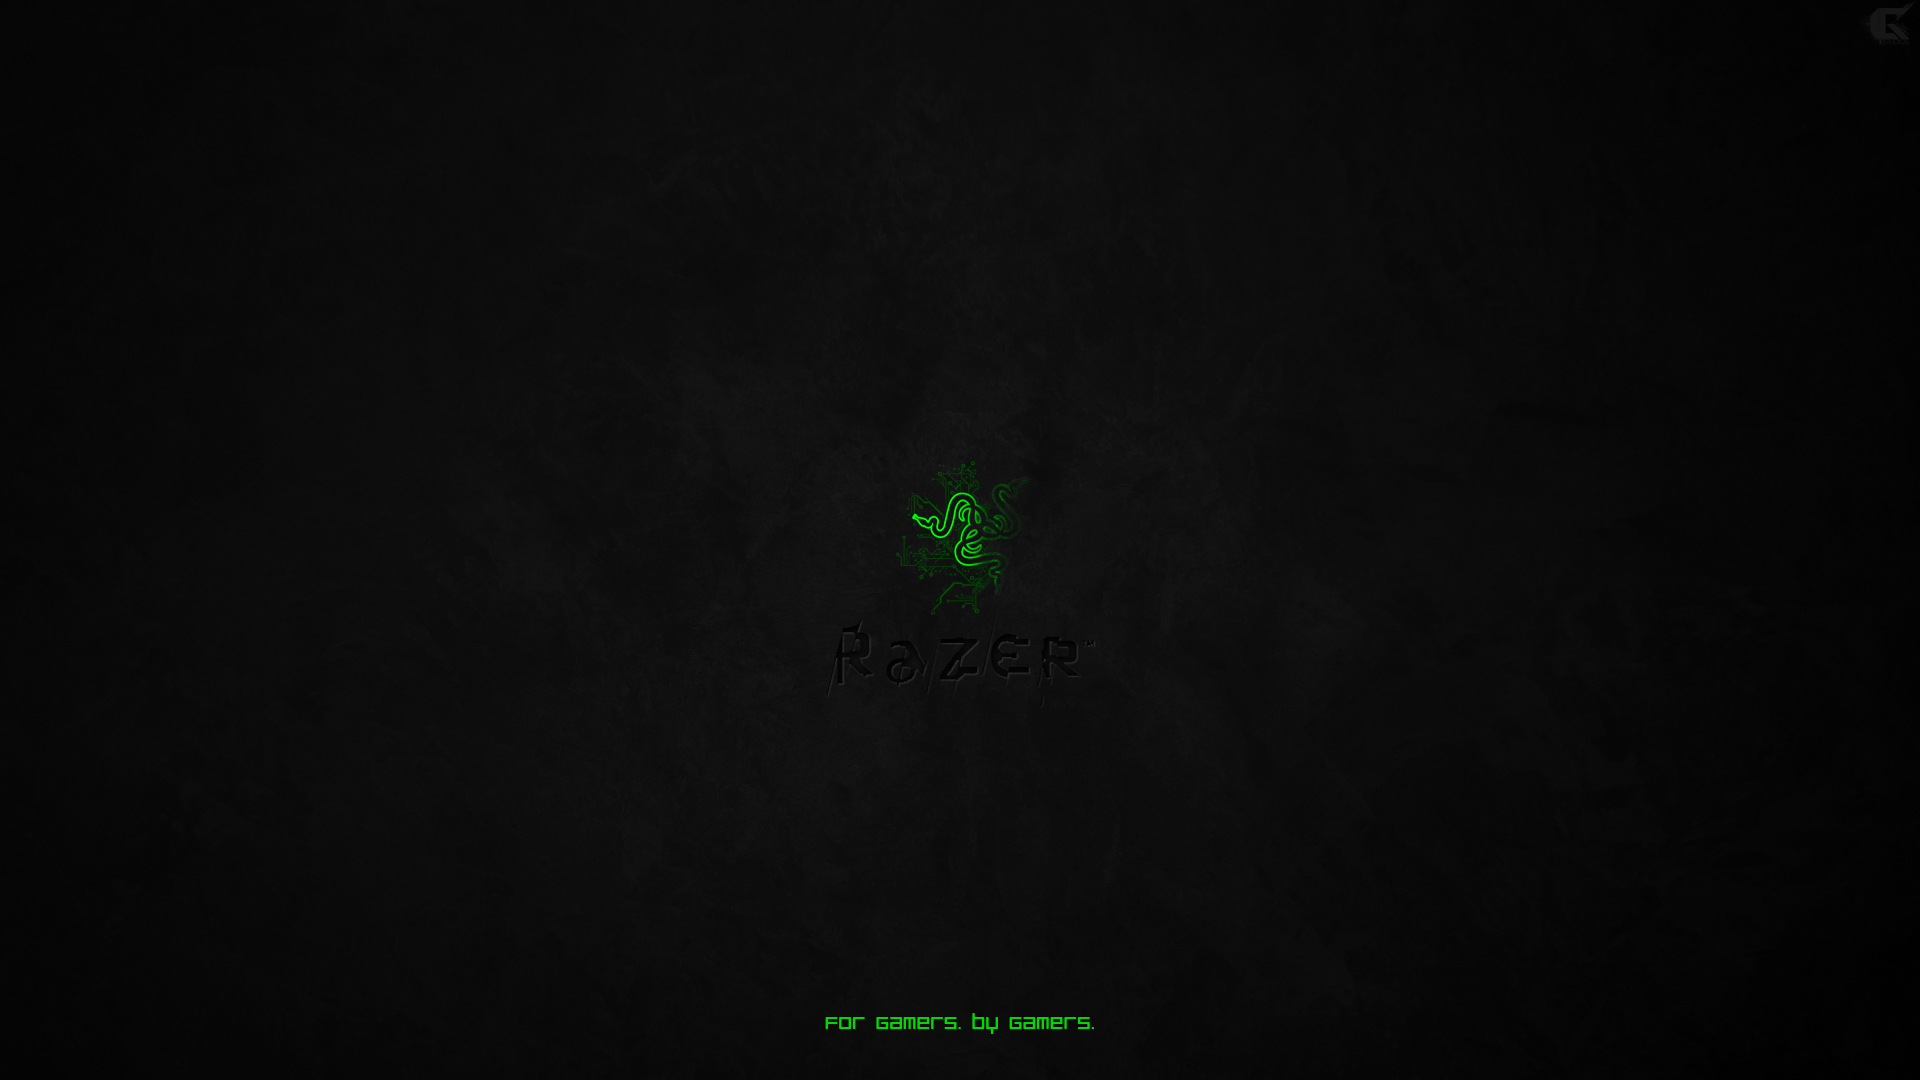 Razer Wallpapers Wallpaper Cave